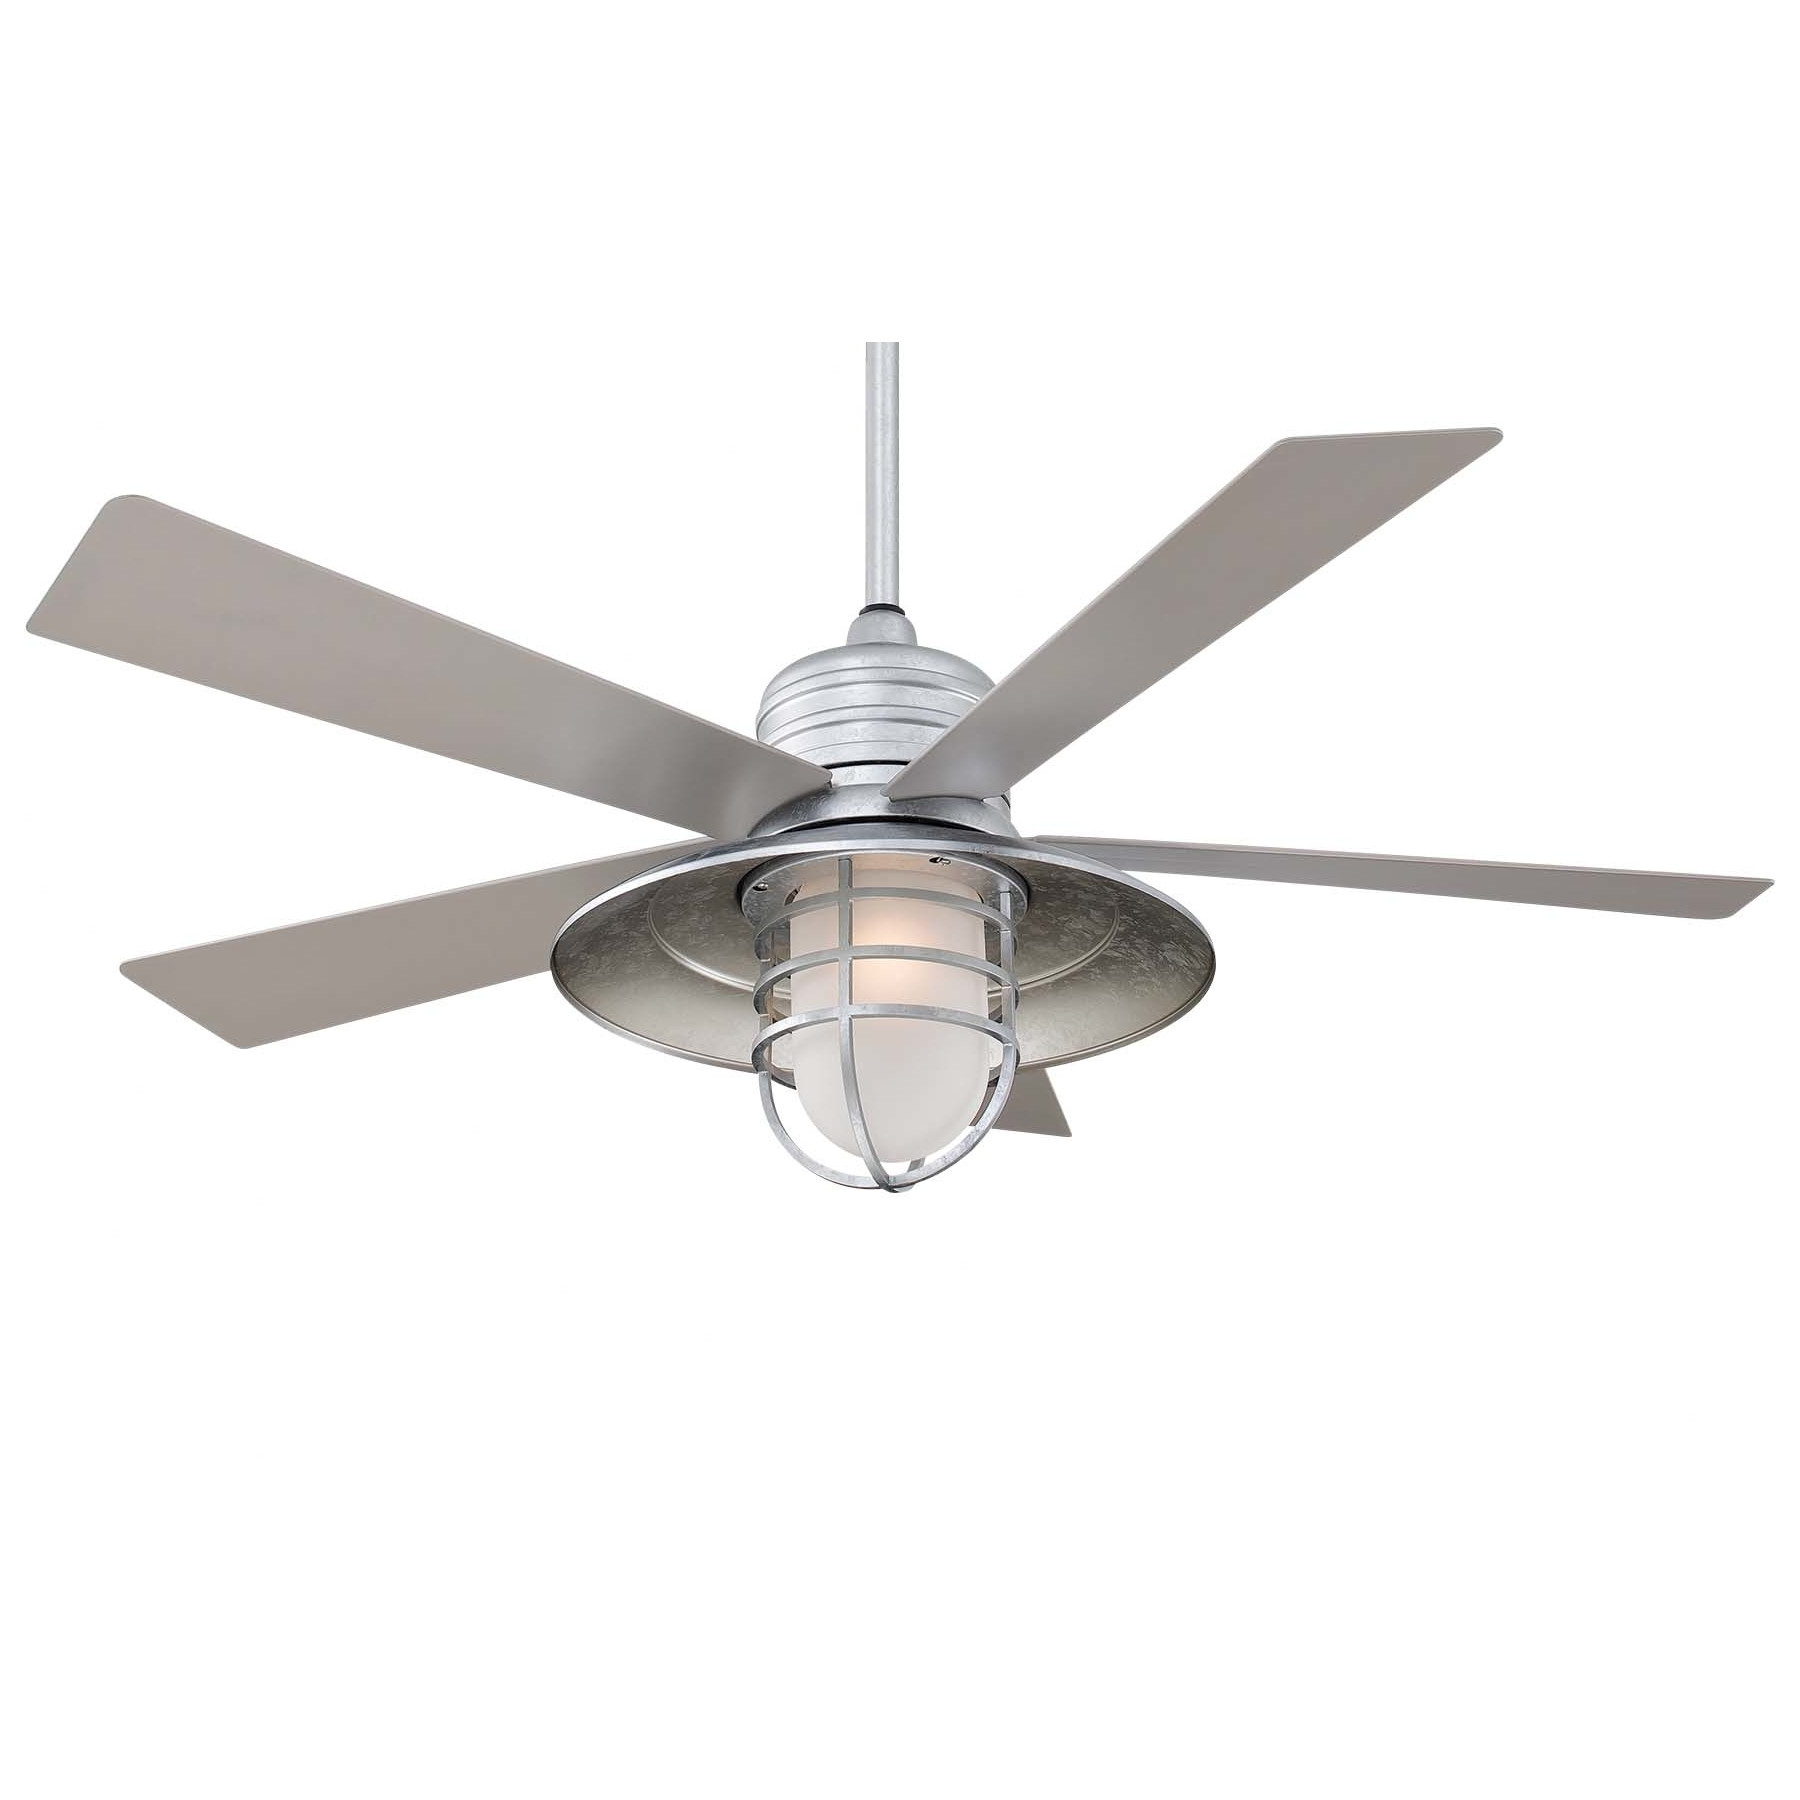 Favorite 42 Wayfair Ceiling Fans, Minka Aire 54Quot; Rainman 5 Blade Indoor Within Wayfair Outdoor Ceiling Fans With Lights (View 5 of 20)